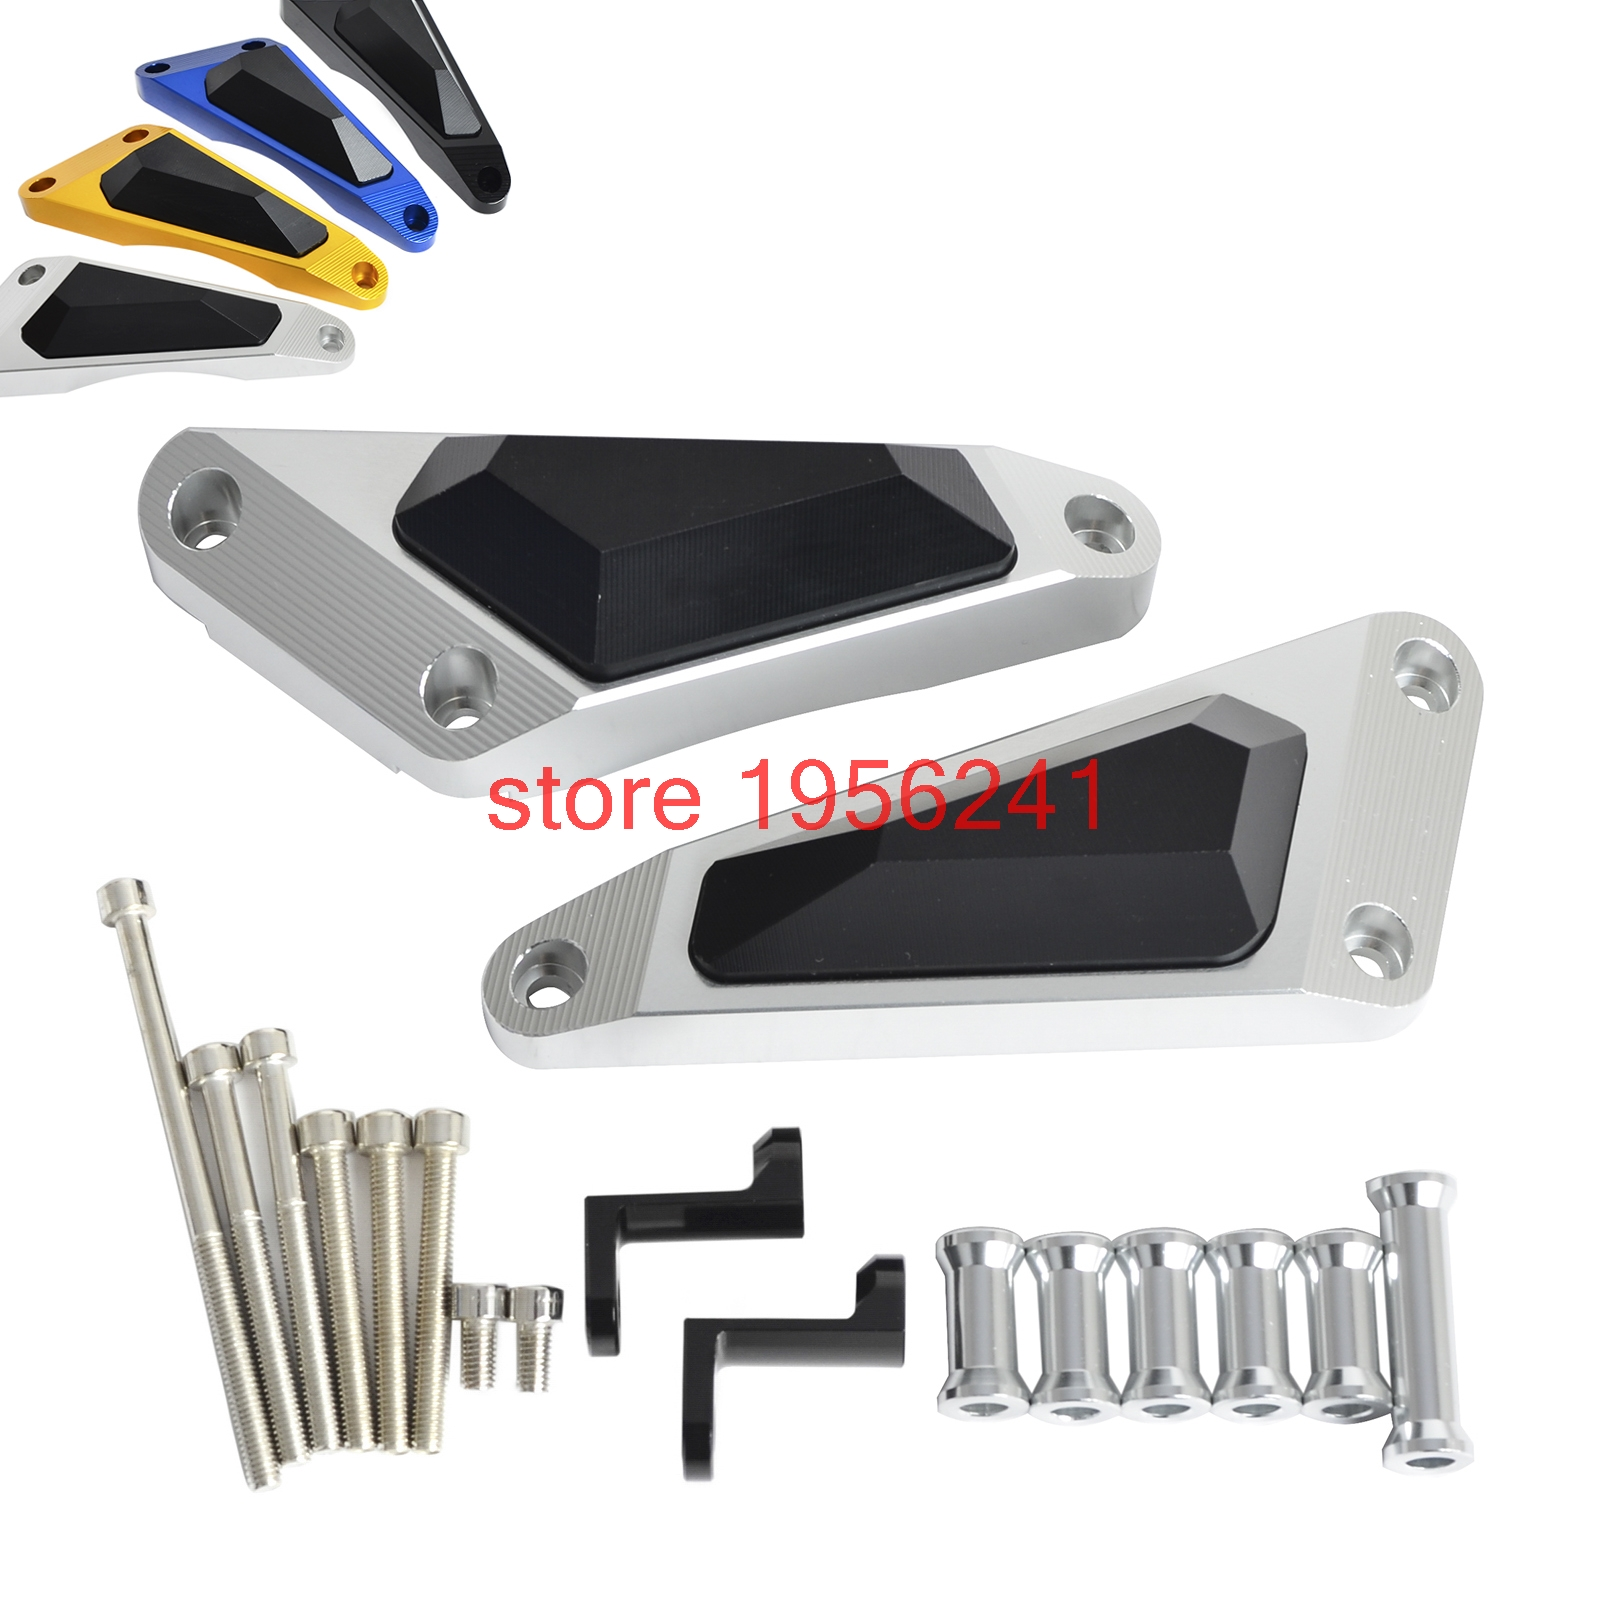 Motorcycle Engine Frame Slider Stator Case Guard Cover Protector For Yamaha MT-09 MT09 FZ-09 FZ09 2013 - 2016 2014 2015 for yamaha mt 07 fz 07 mt07 fz07 2014 2016 motorcycle accessories cnc aluminum engine protector guard cover frame slider blue